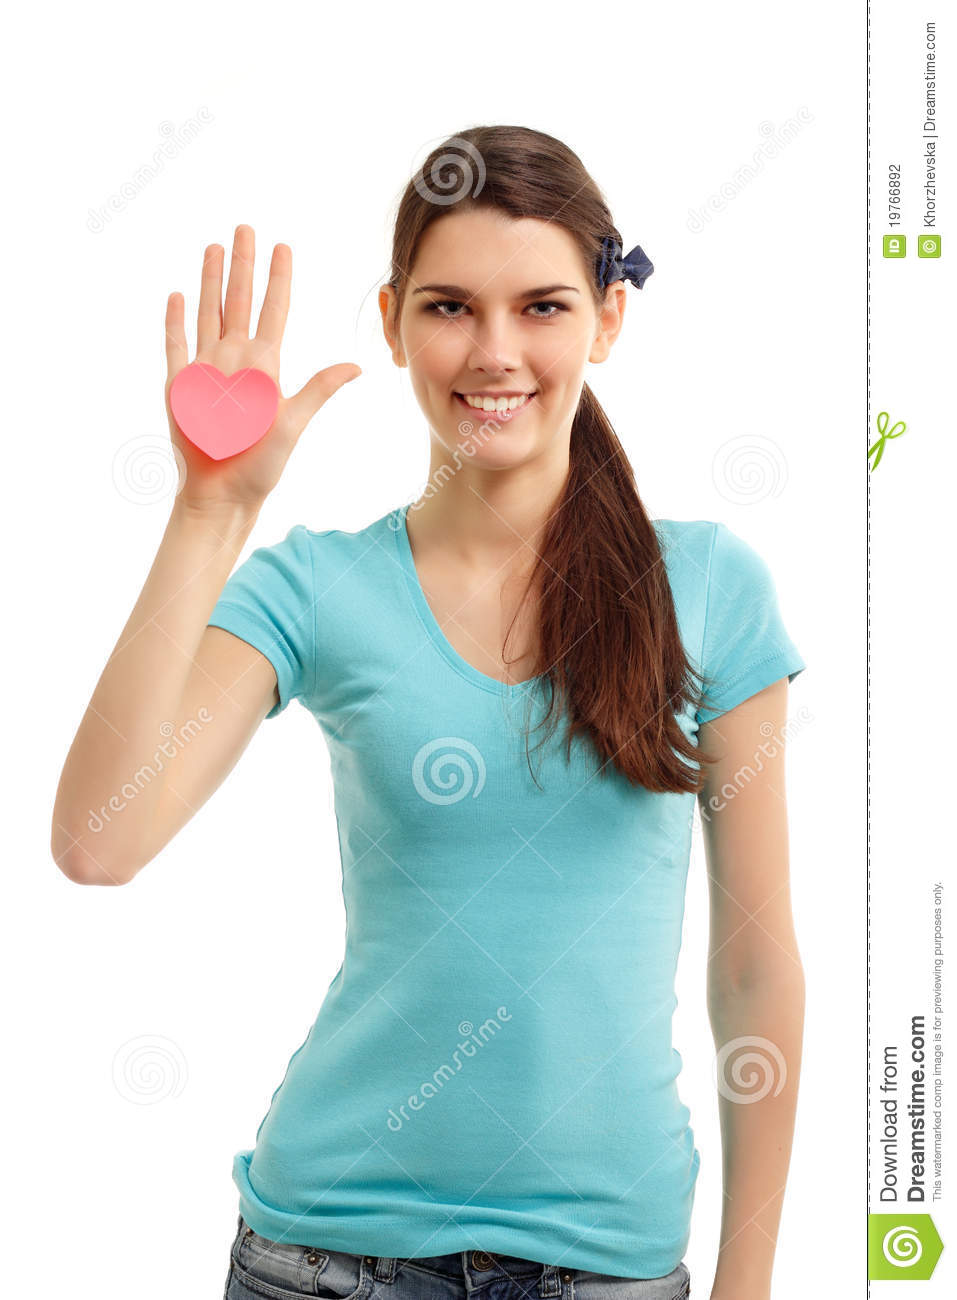 Happy Teen By Crumbling Wall Stock Image: Happy Teen Girl Holding In Hand Heart Stock Photography